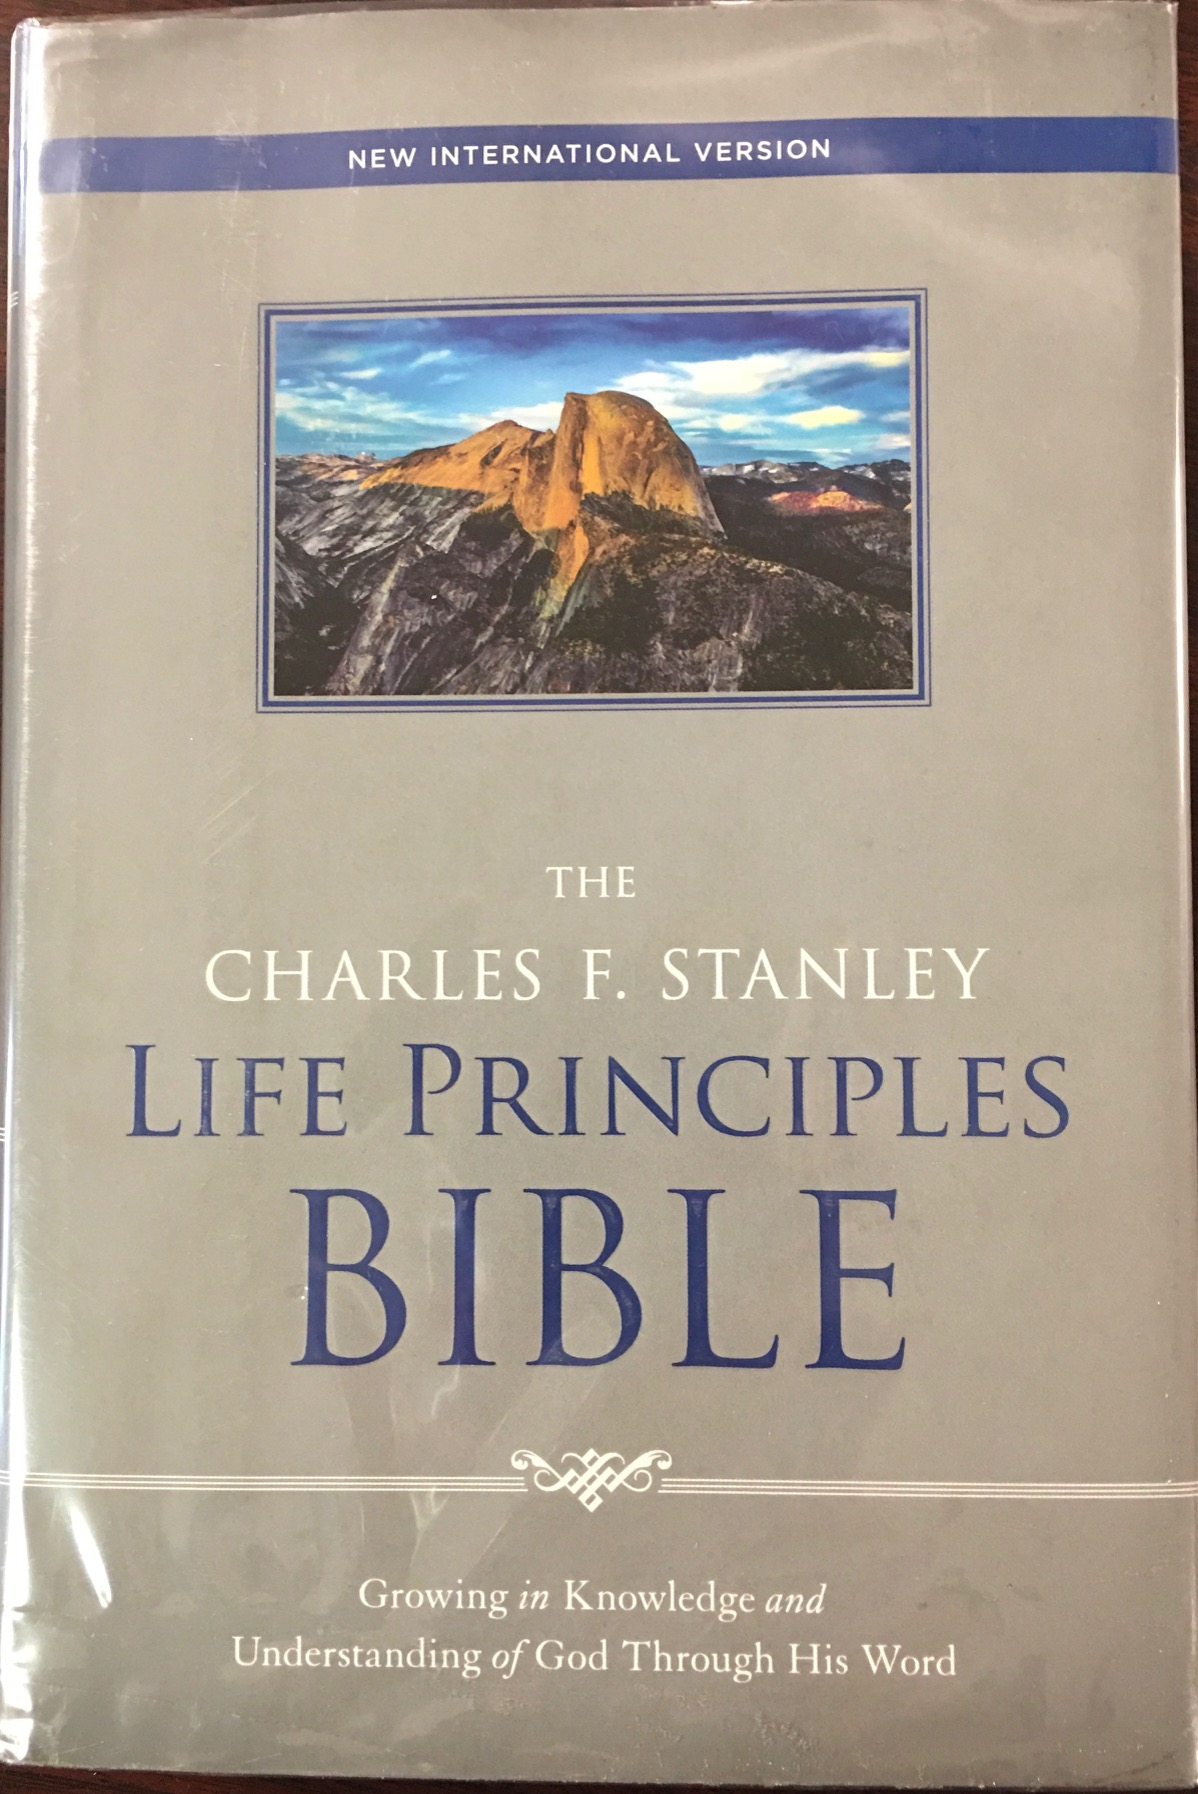 Image for The Charles F. Stanley Life Principles Bible - New International Version (NIV)